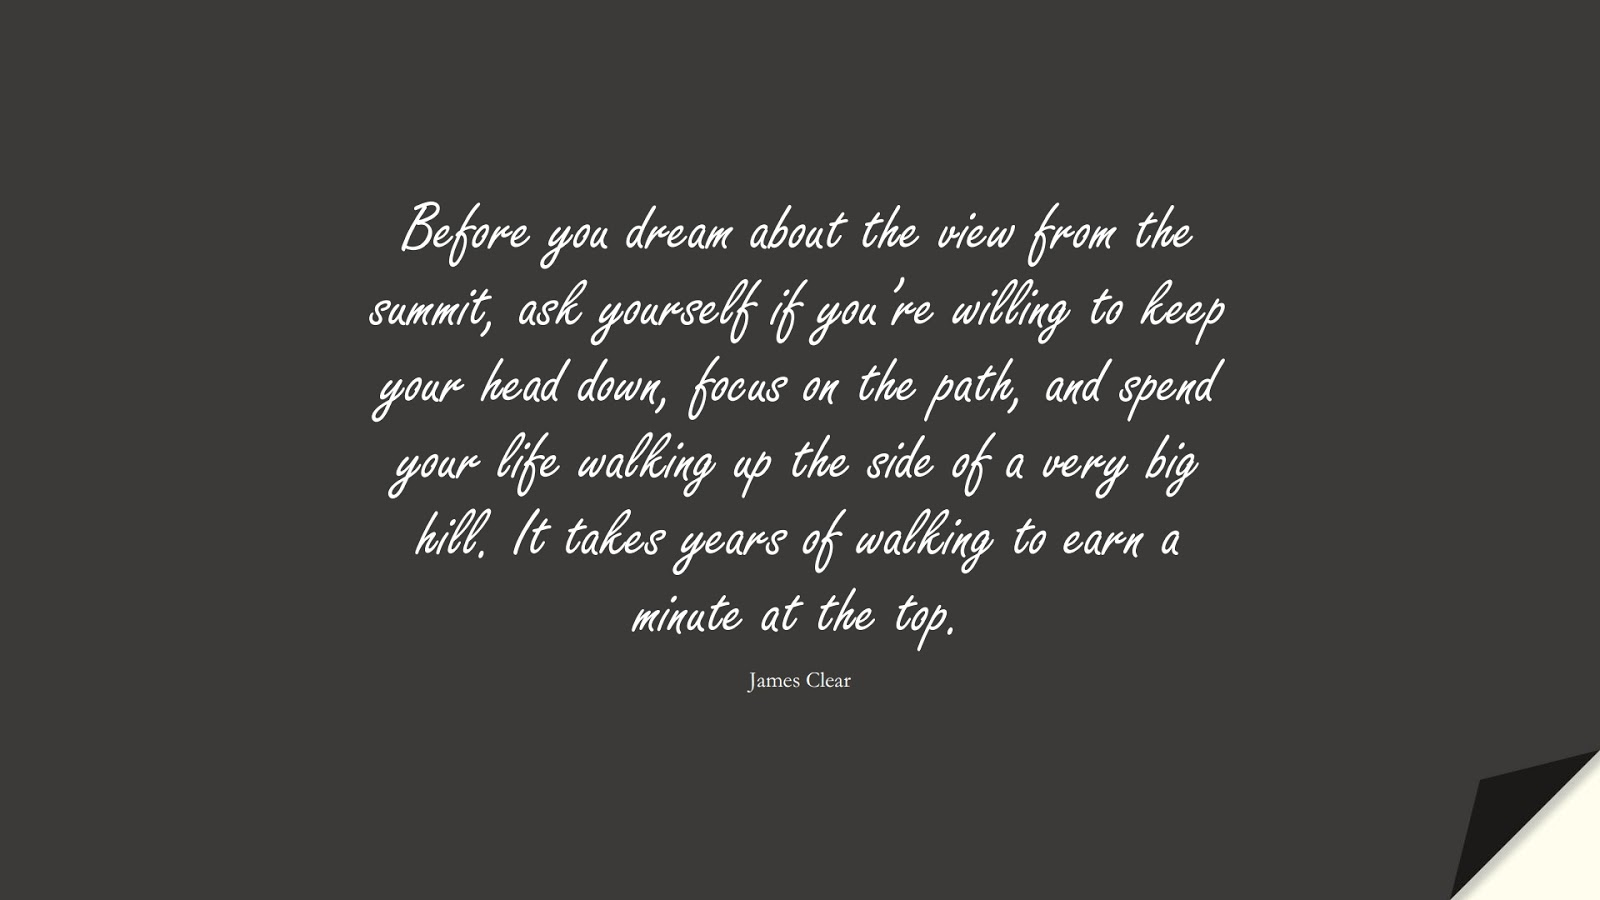 Before you dream about the view from the summit, ask yourself if you're willing to keep your head down, focus on the path, and spend your life walking up the side of a very big hill. It takes years of walking to earn a minute at the top. (James Clear);  #NeverGiveUpQuotes